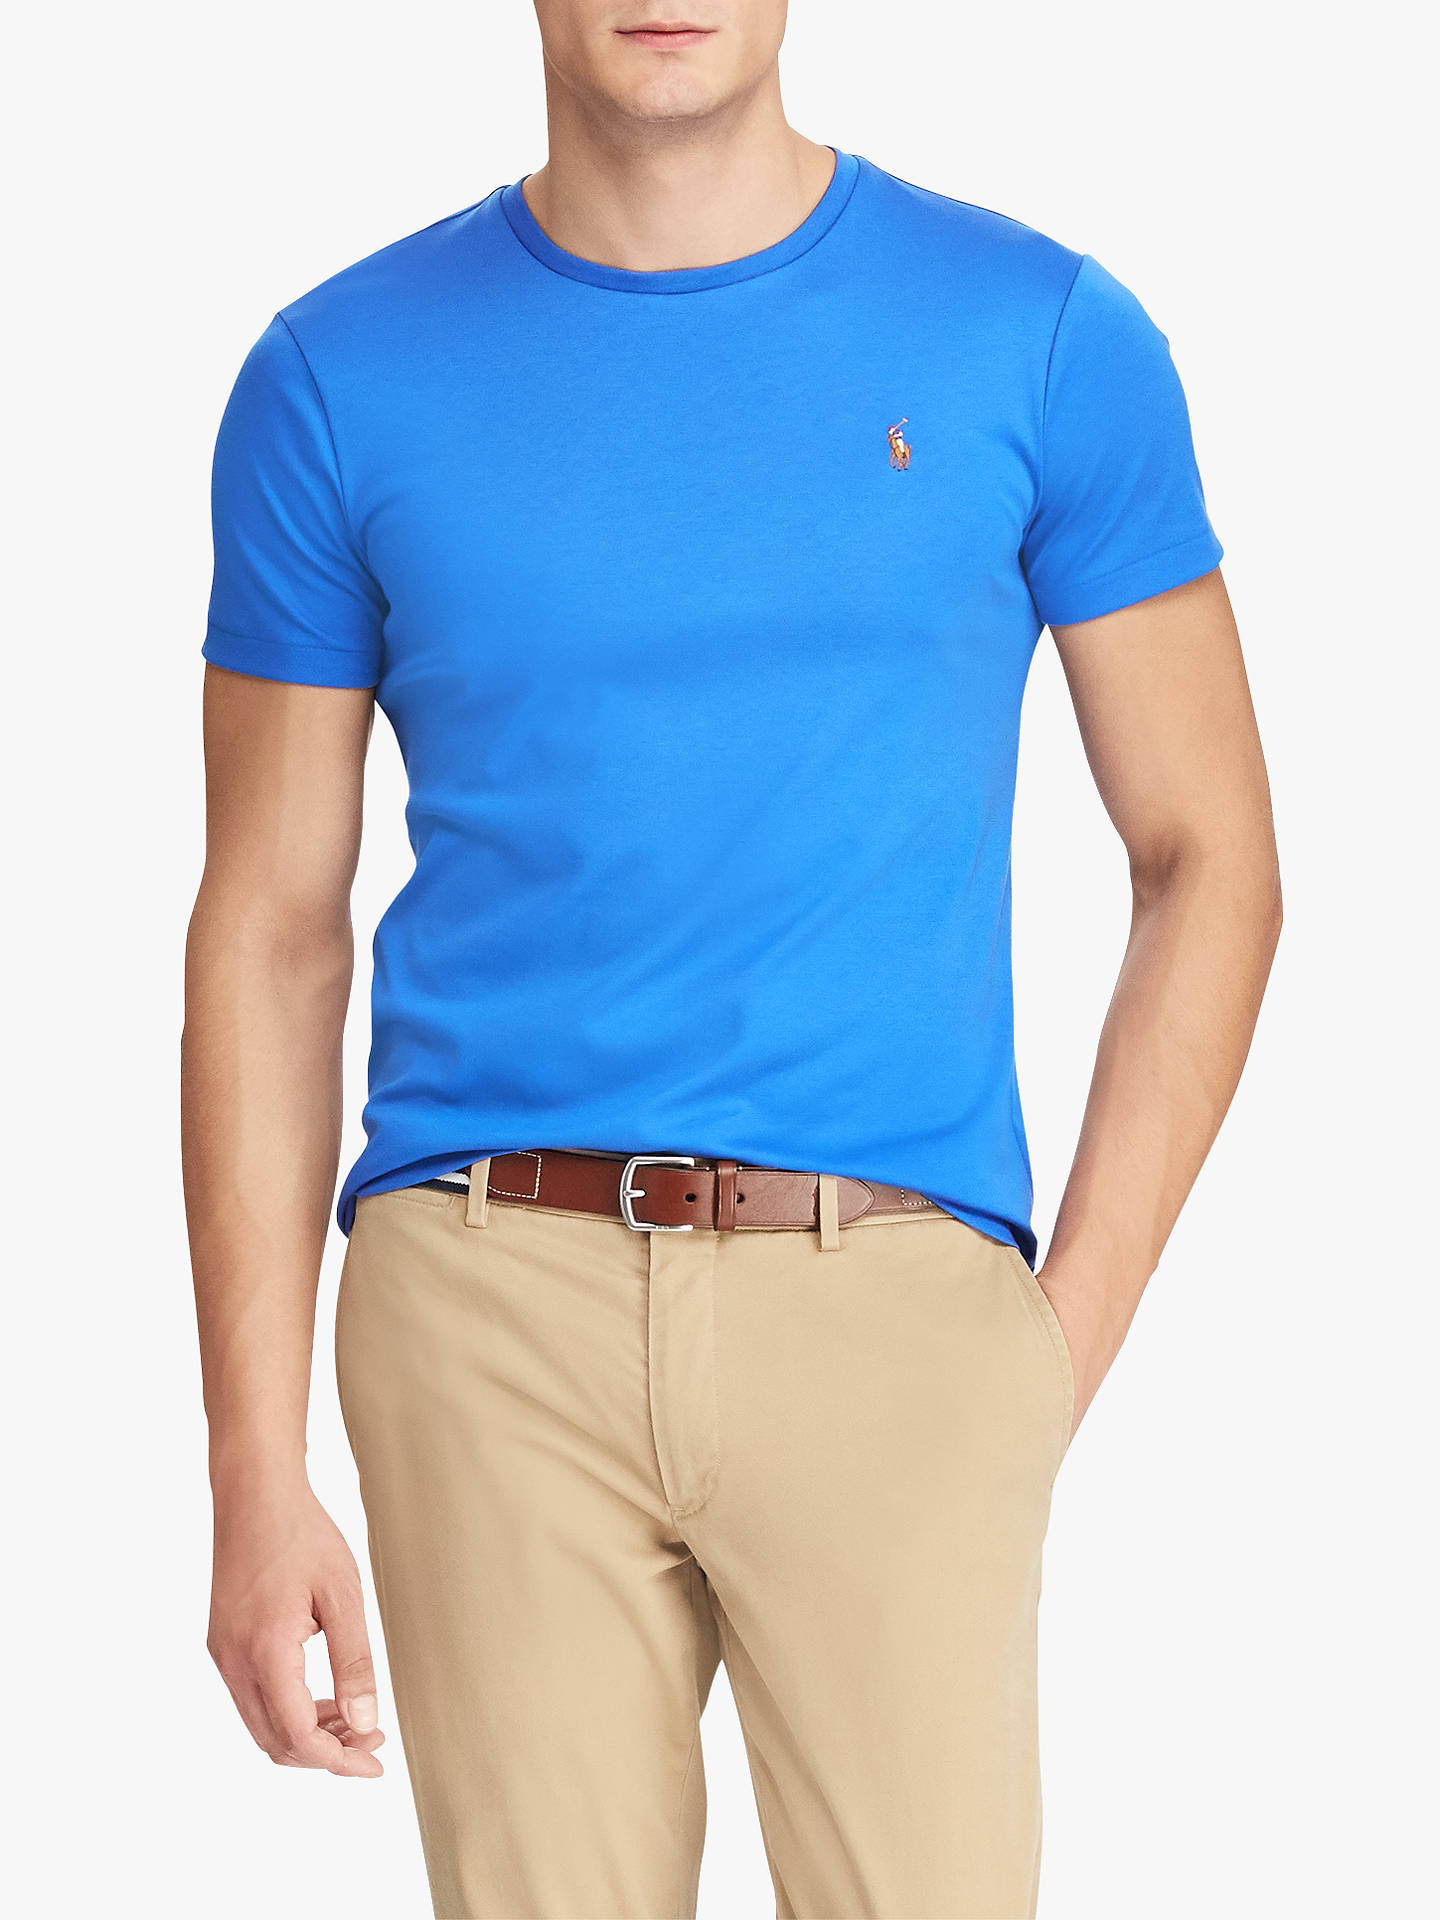 d42ed2056 Polo Ralph Lauren Custom Slim Fit T-Shirt at John Lewis   Partners